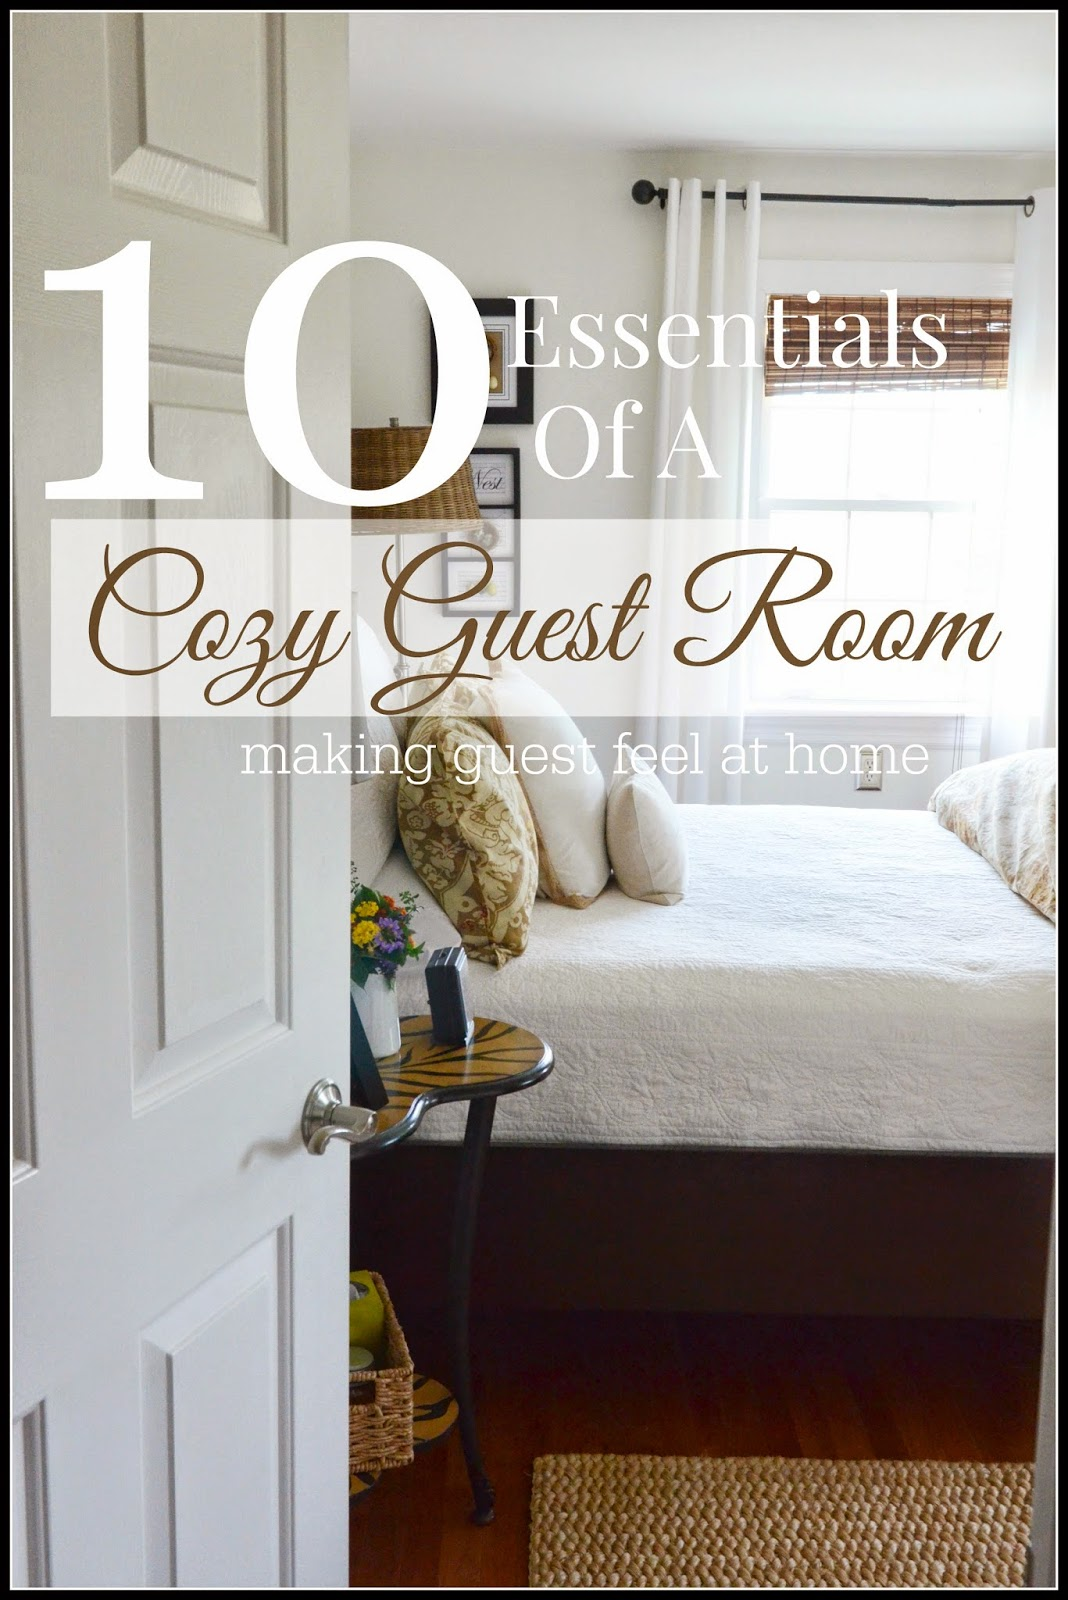 Hotel Guest Room Design: 10 ESSENTIALS OF A COZY GUEST ROOM